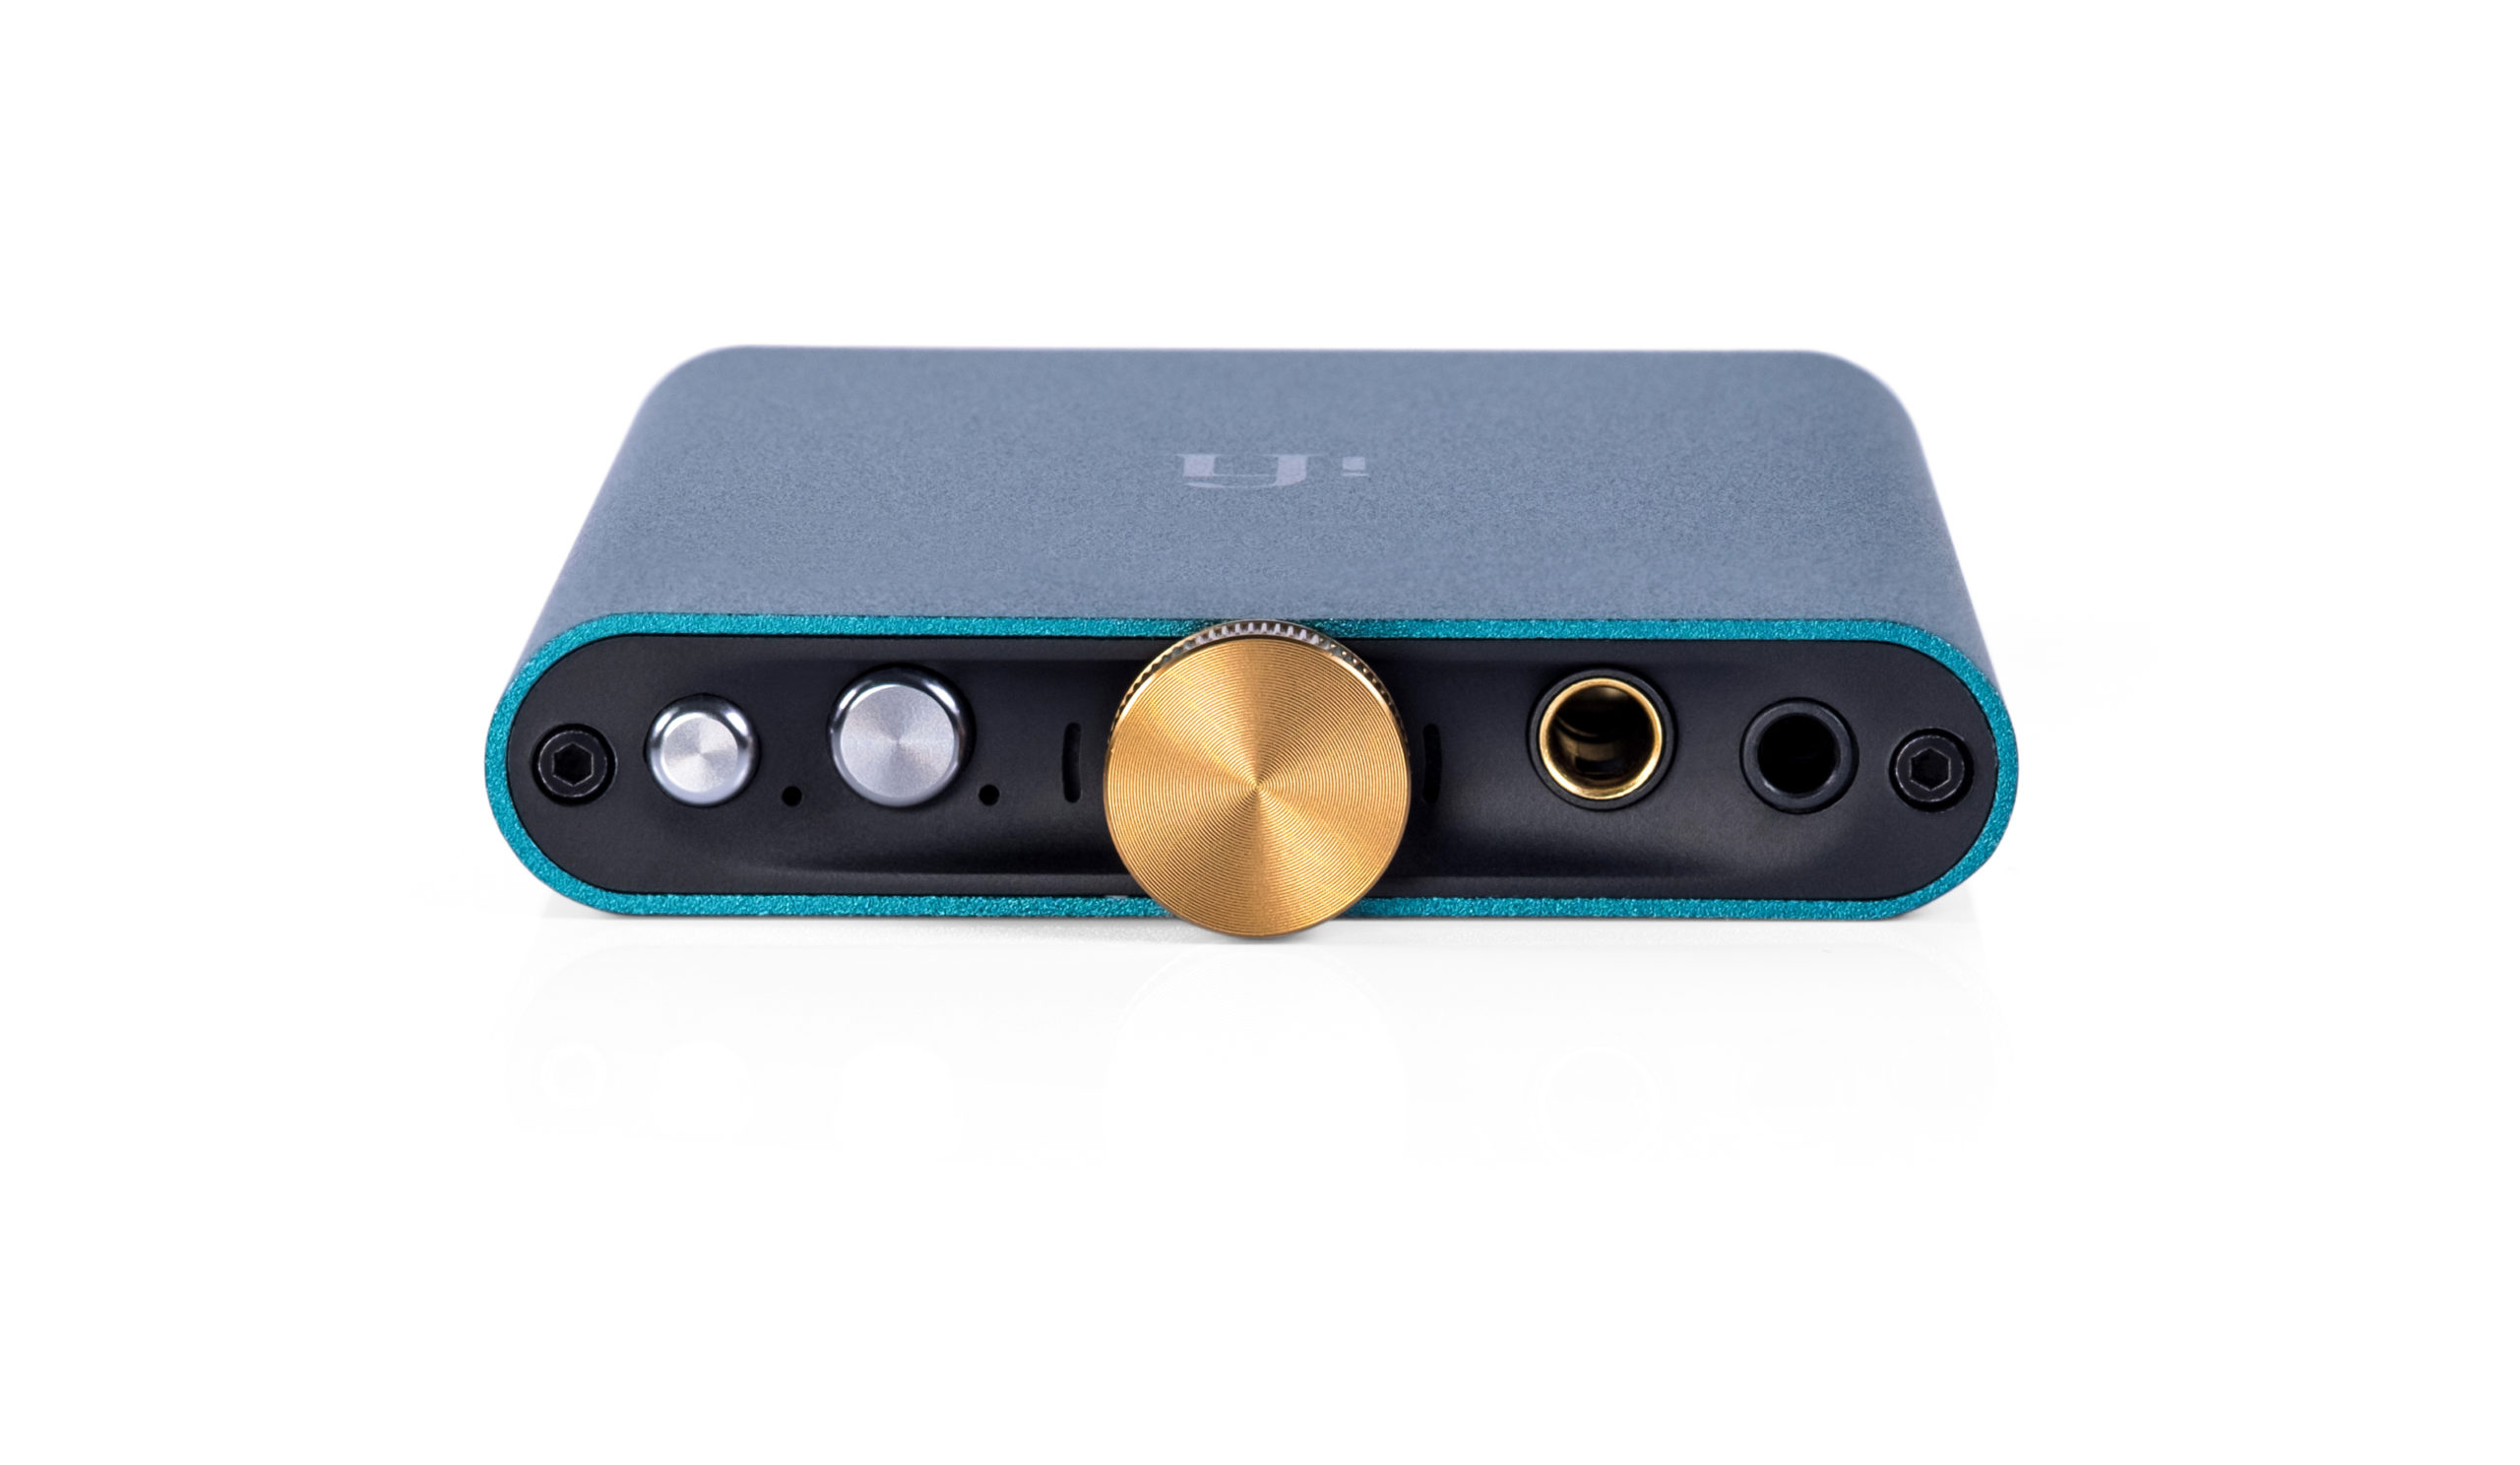 The New iFi hip-dac: Small Player, but Huge Value!